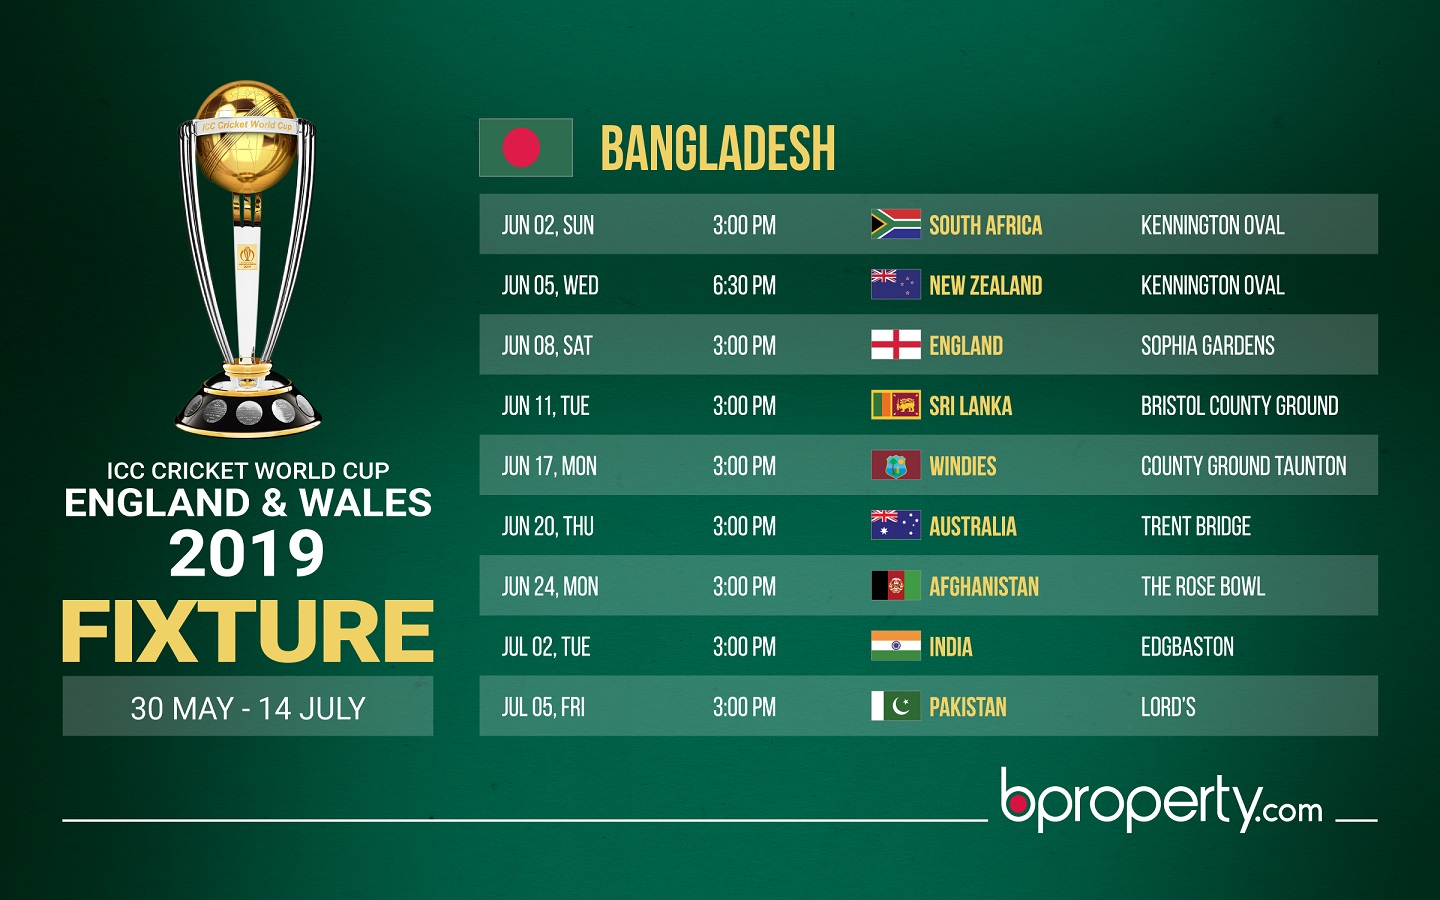 Bangladesh's fixture for Cricket World Cup 2019